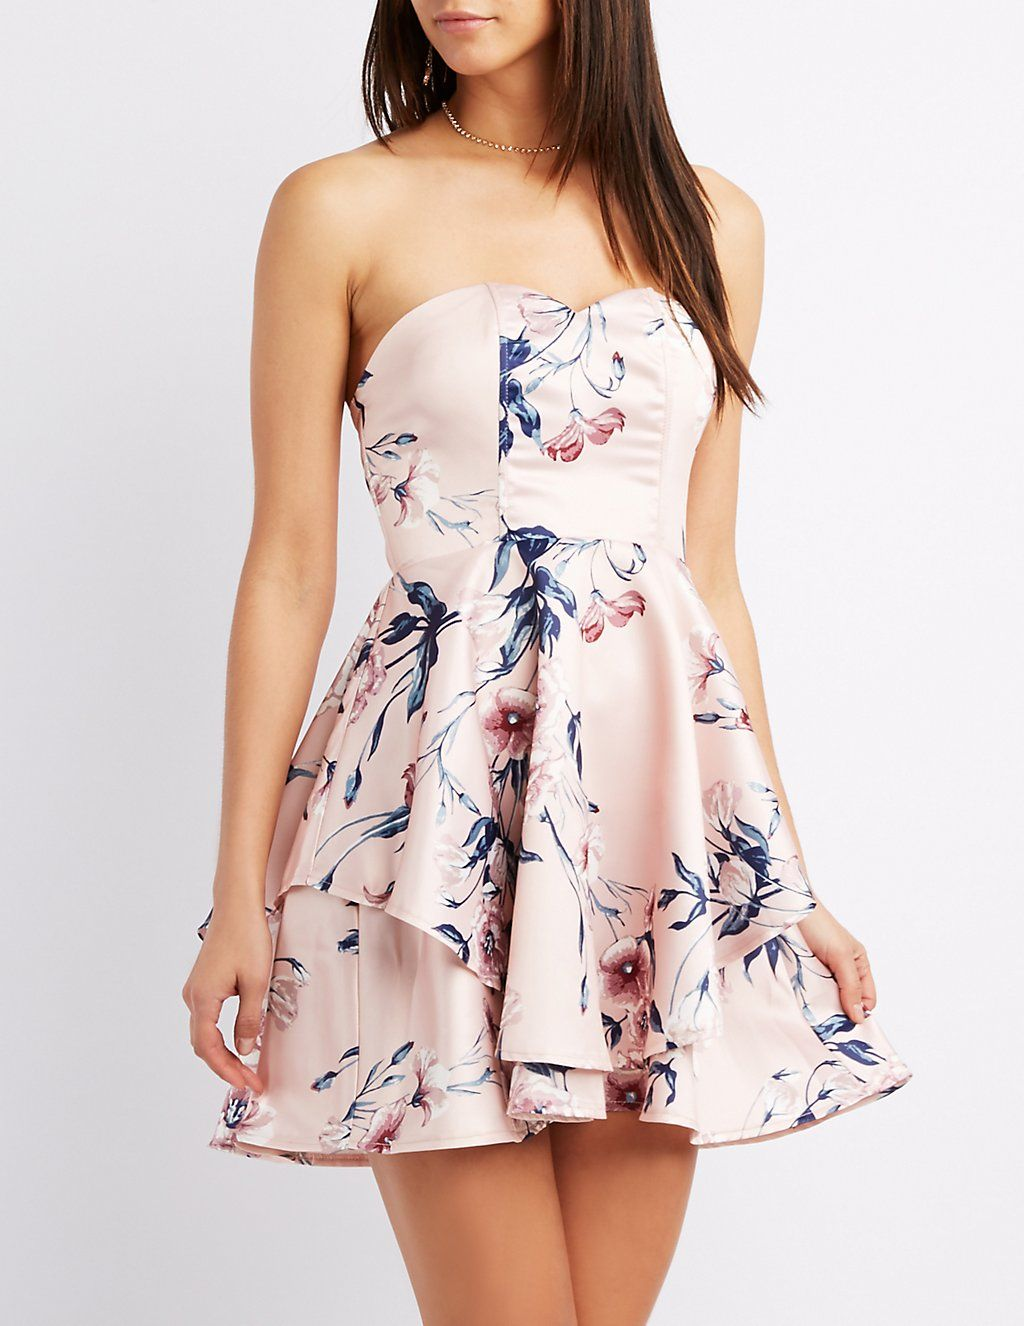 Silky Satin Fabric Shapes This Stunning Floral Printed Skater Skirt That Is Sure To Captivate And Turn Heads A Stra Dresses Skater Dress Printed Skater Skirt [ 1326 x 1024 Pixel ]